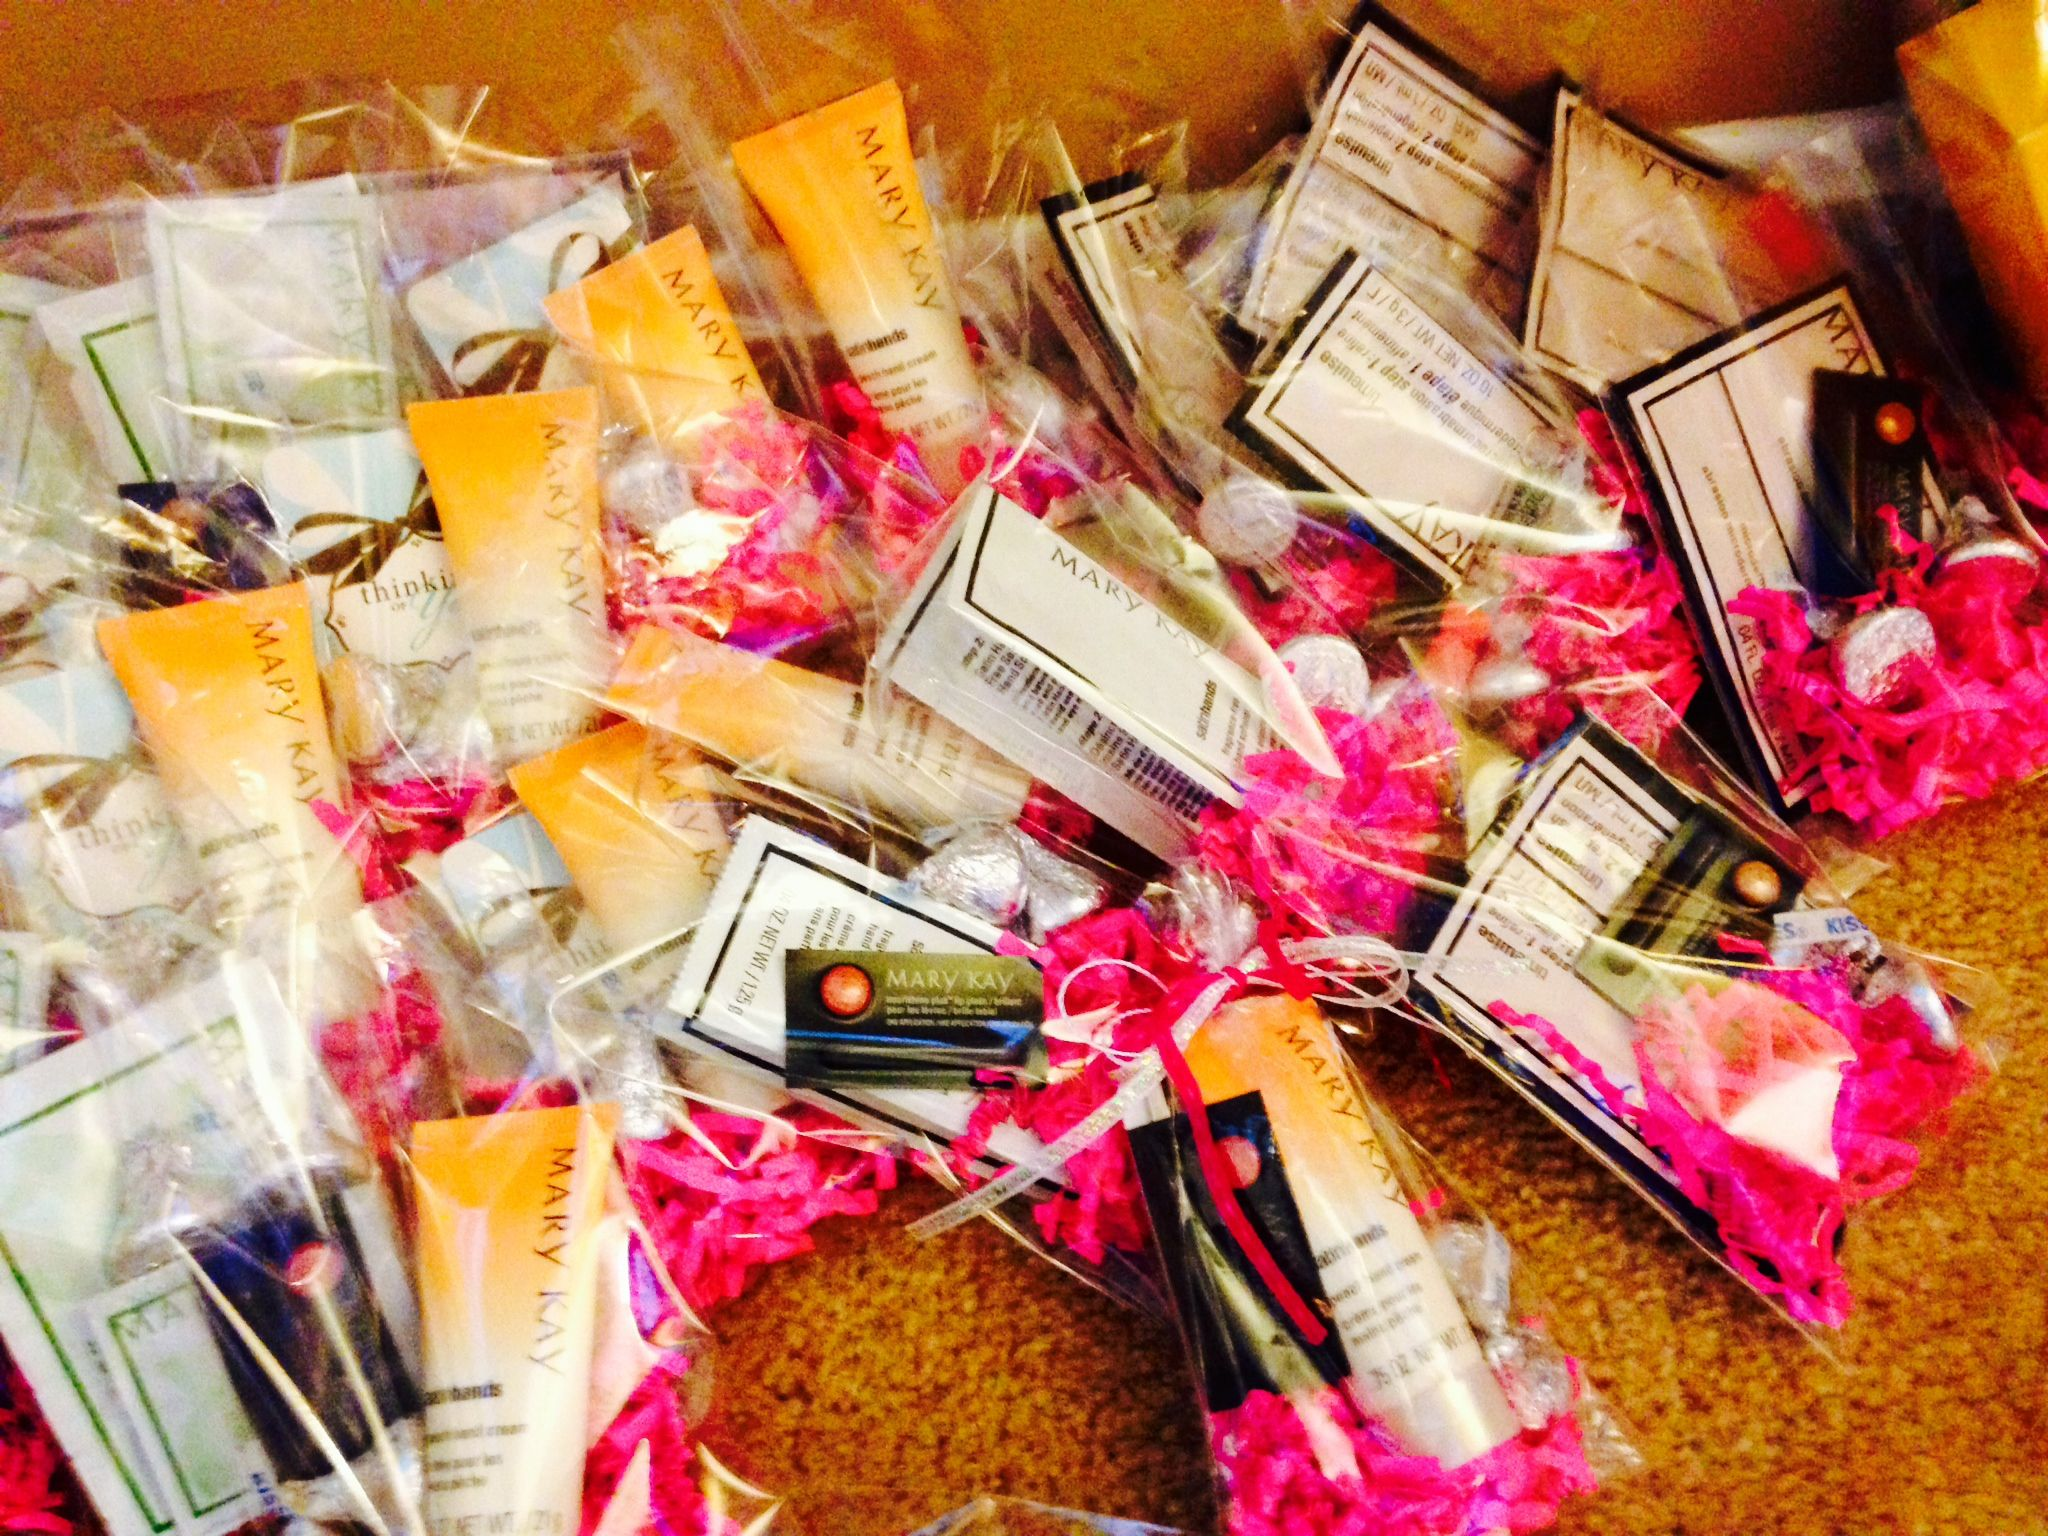 Sittin' on the floor, watching a movie making #marykay sample bags ...